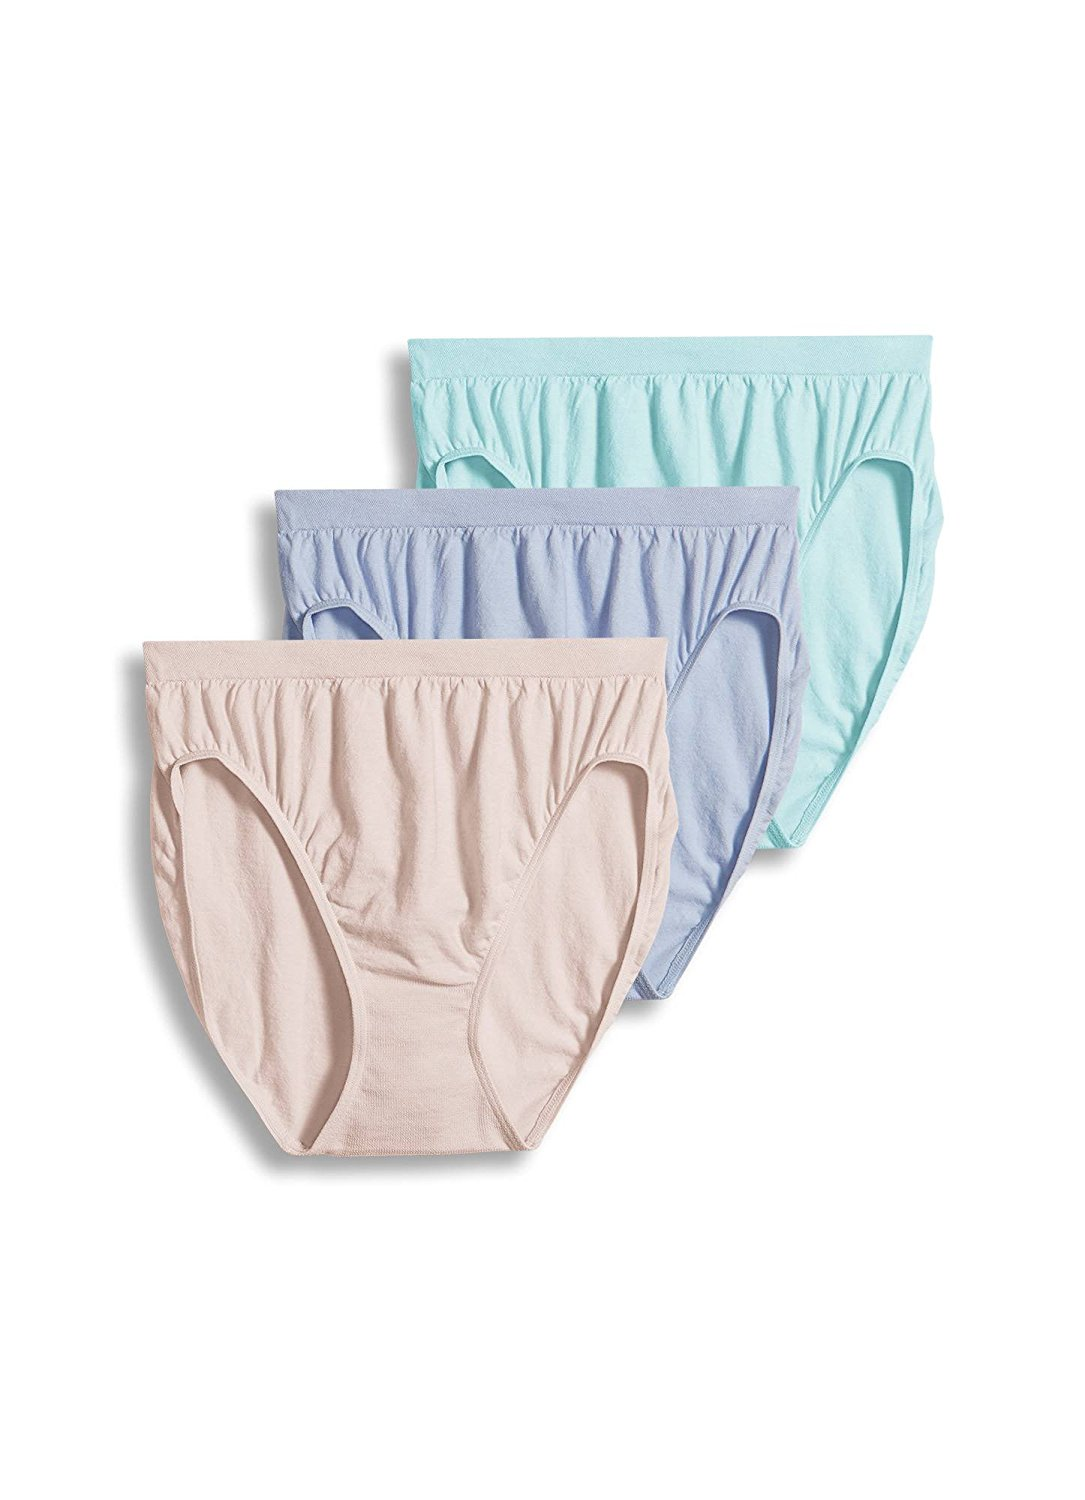 936c384a2f21 Get Quotations · Jockey Women's Underwear Comfies Cotton French Cut - 3 Pack